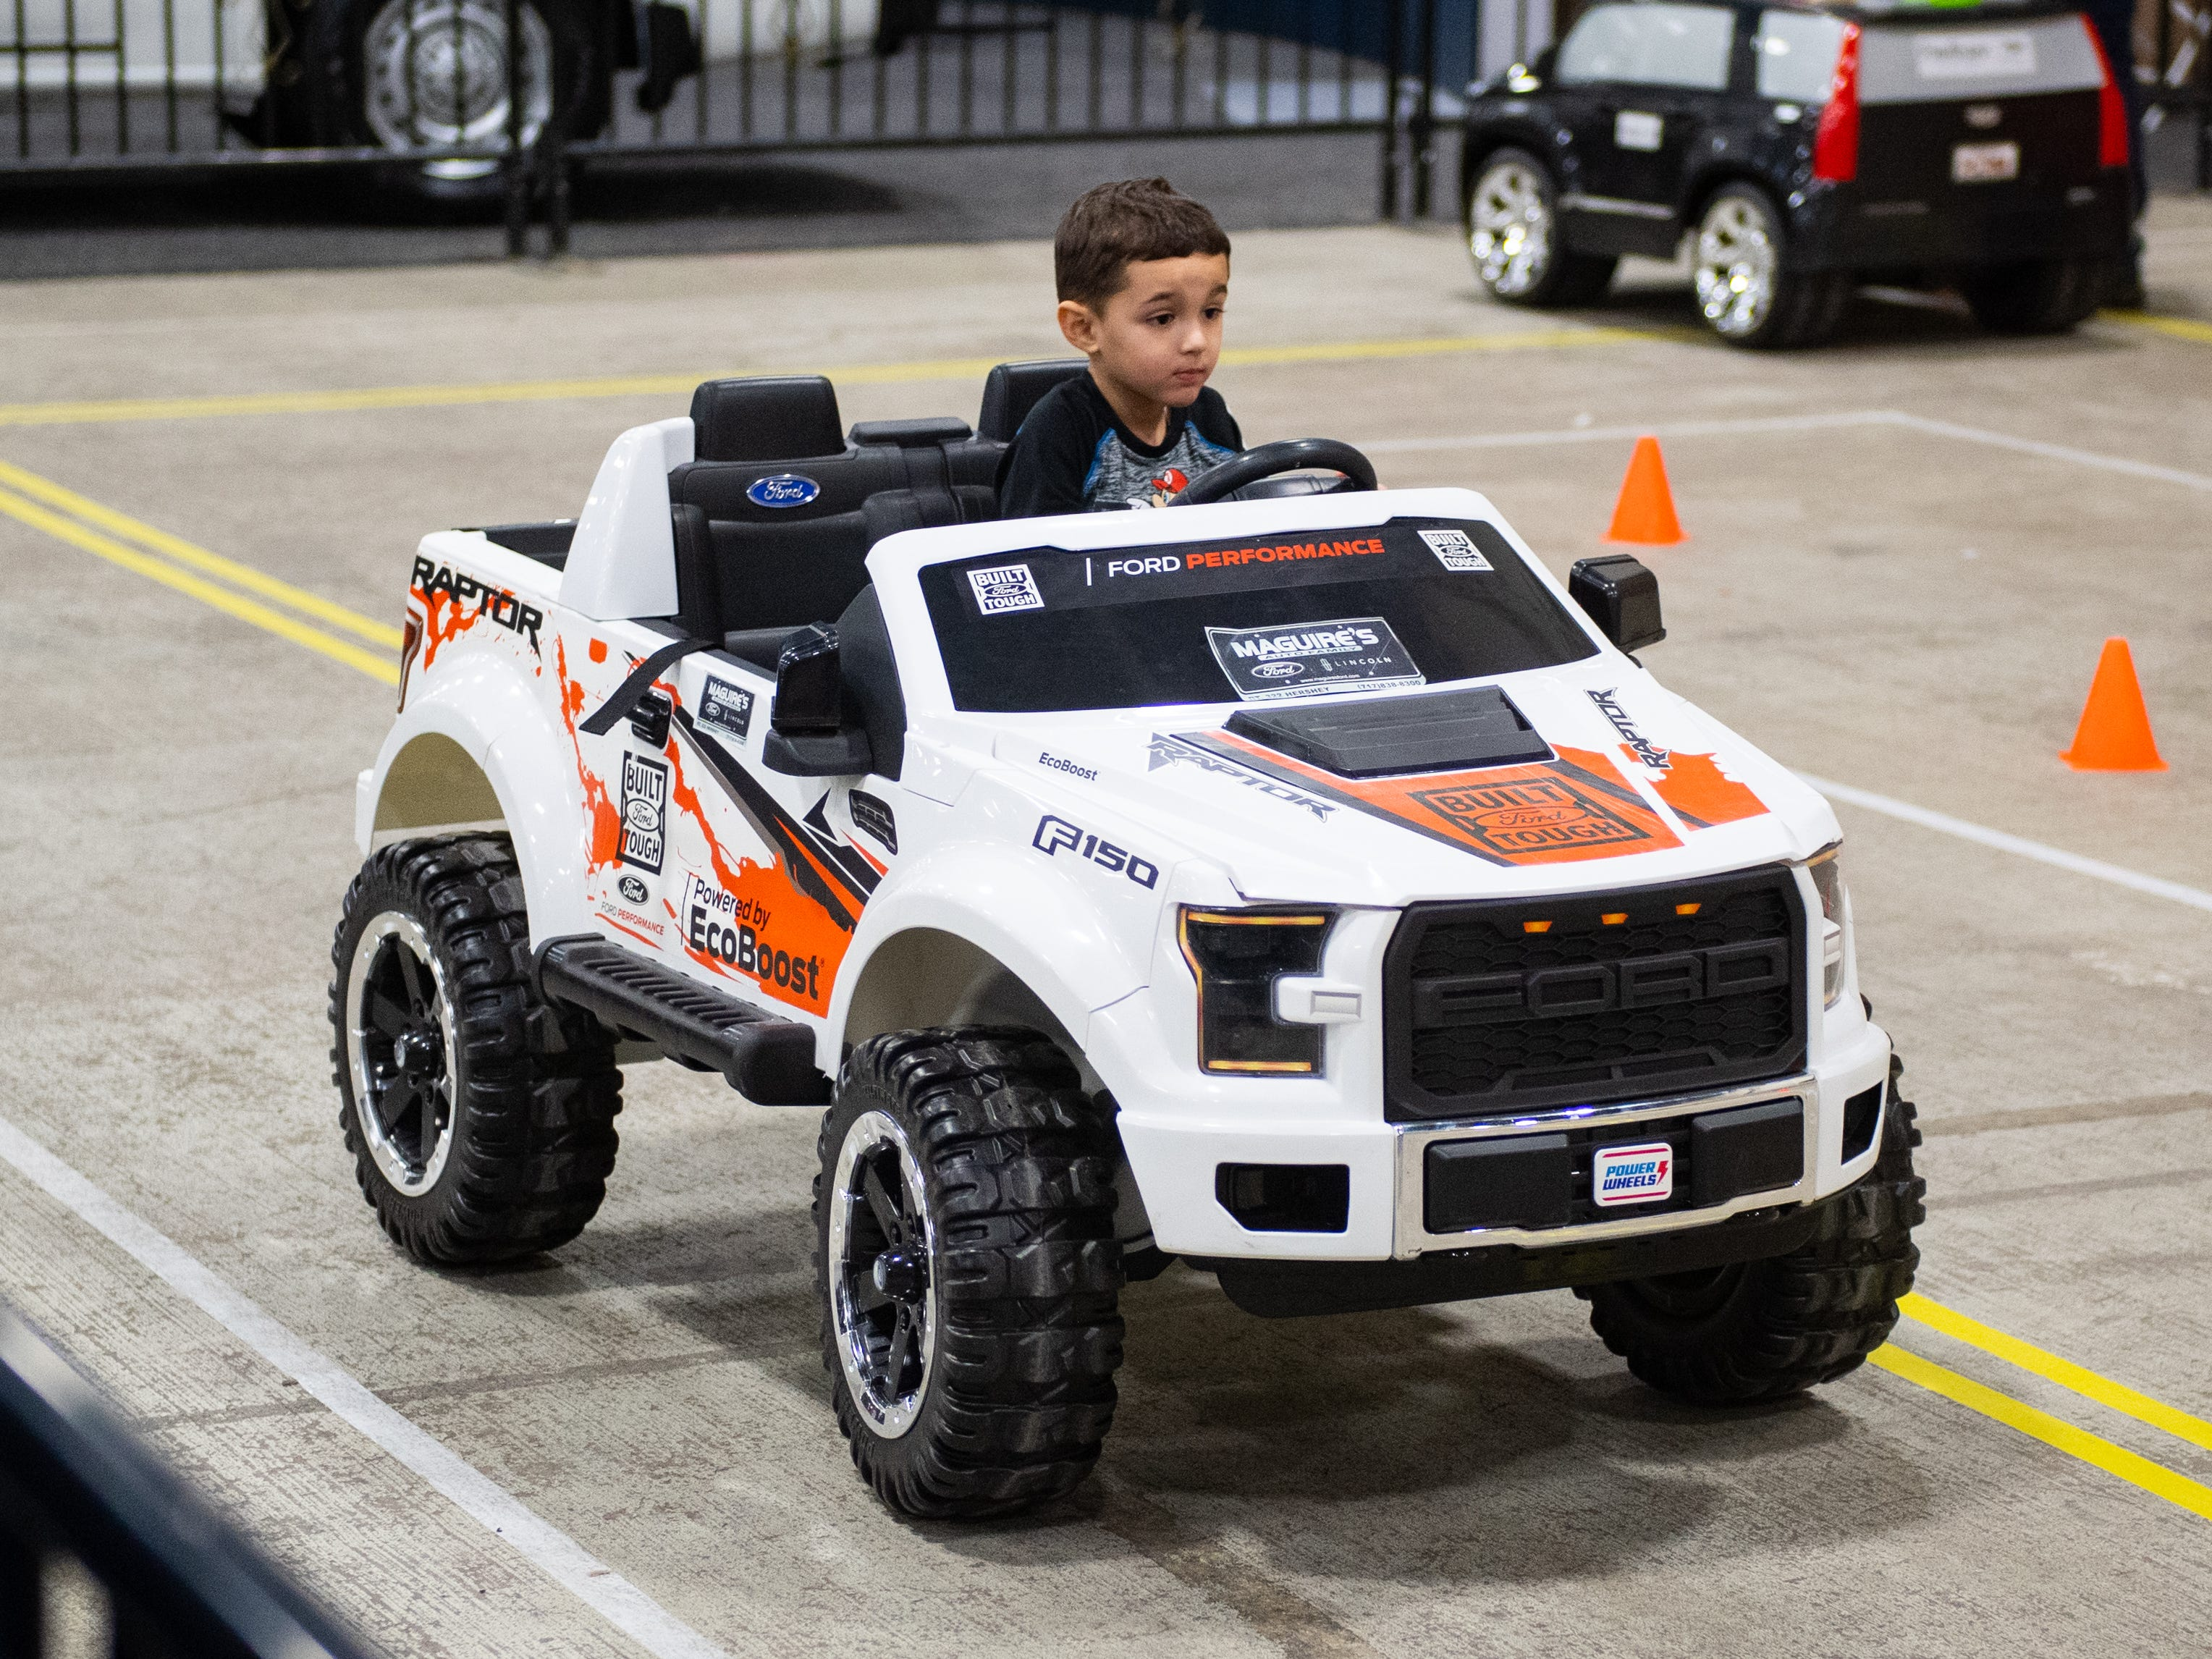 Children test drive their own luxury vehicles at the 2019 Pennsylvania Auto Show, Saturday, January 26, 2019 at the Pennsylvania Farm Show Complex & Expo Center. The auto show continues on Sunday from 10 a.m. to 5 p.m.